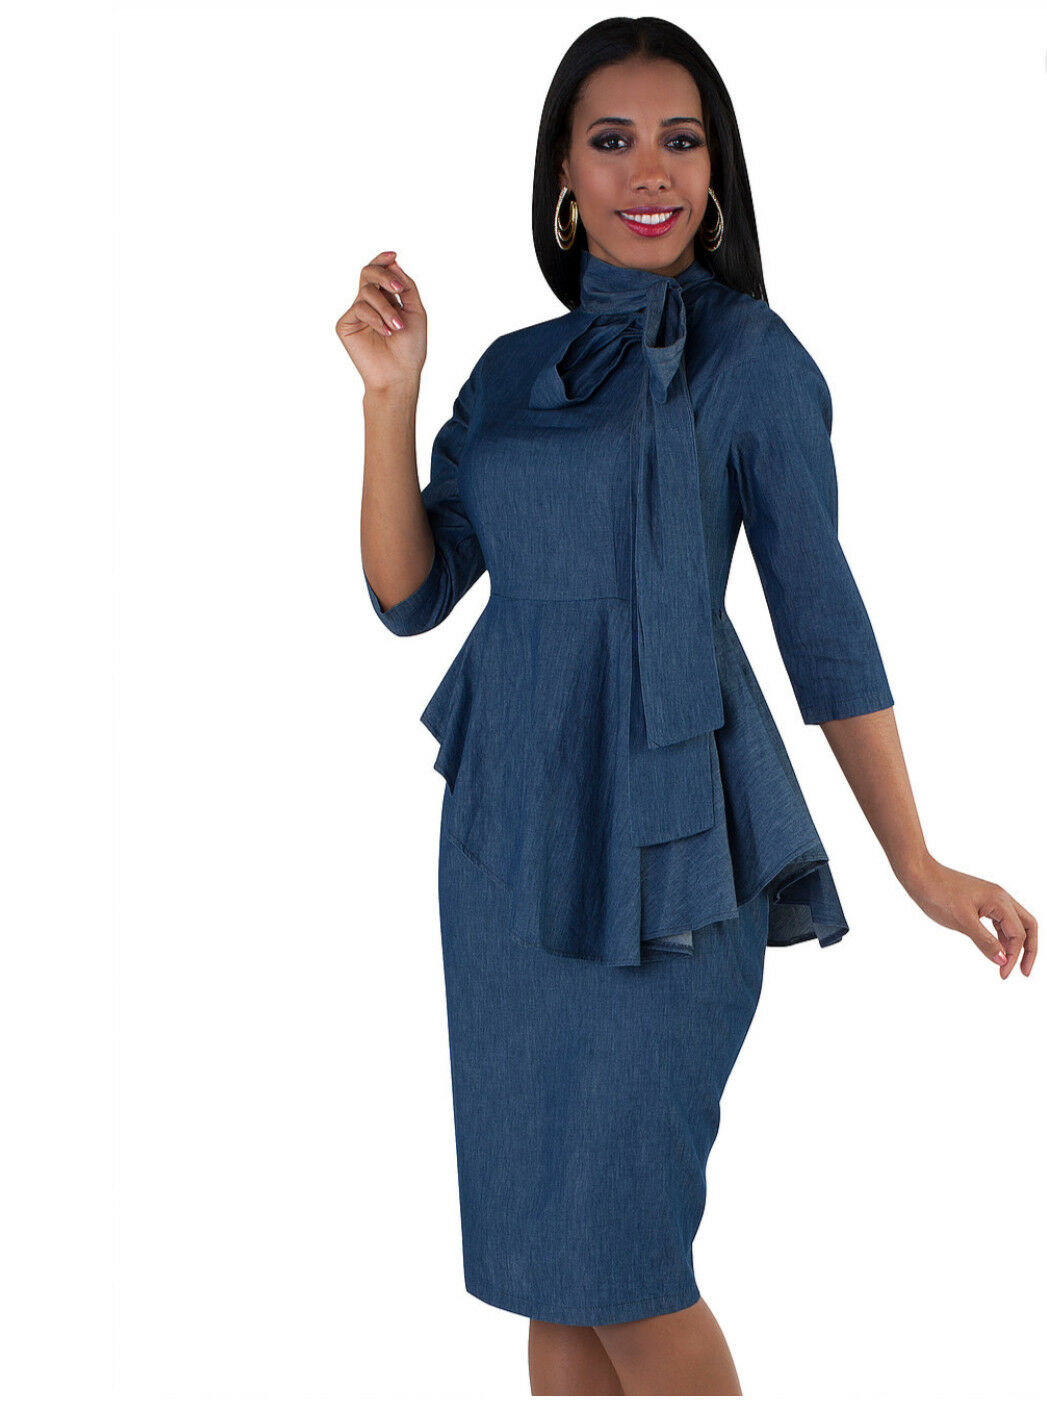 For Her NYC by Tally Taylor Large bluee Denim Dress